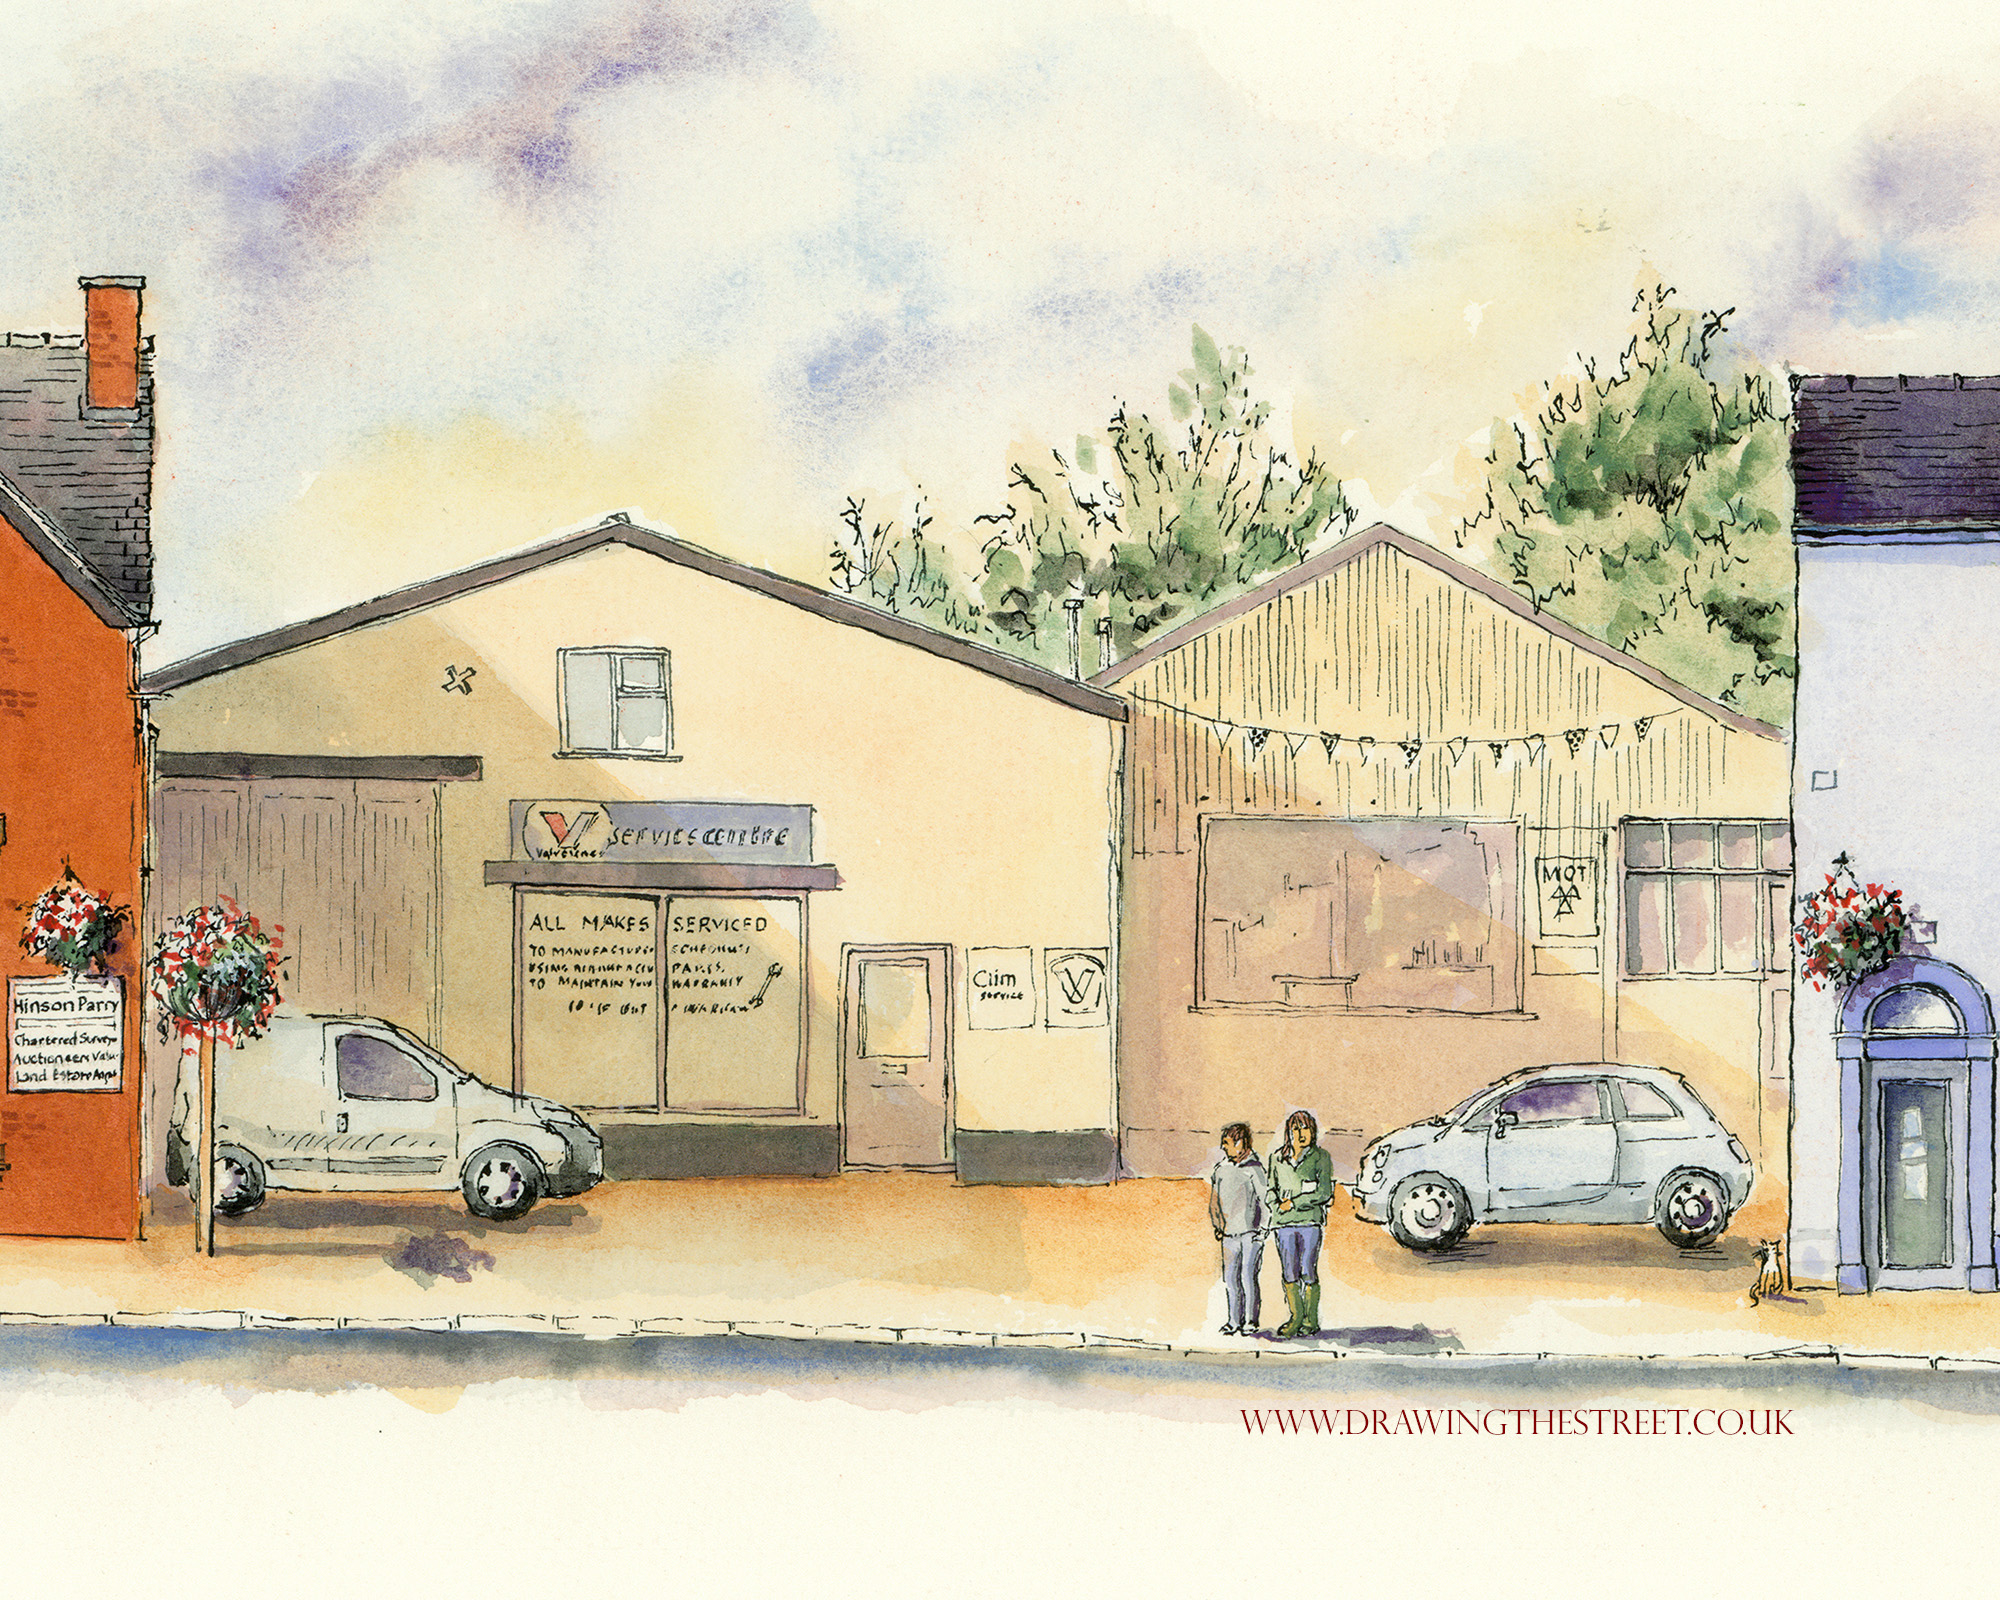 5-2-to-22-stafford-street-eccleshall-service-centre